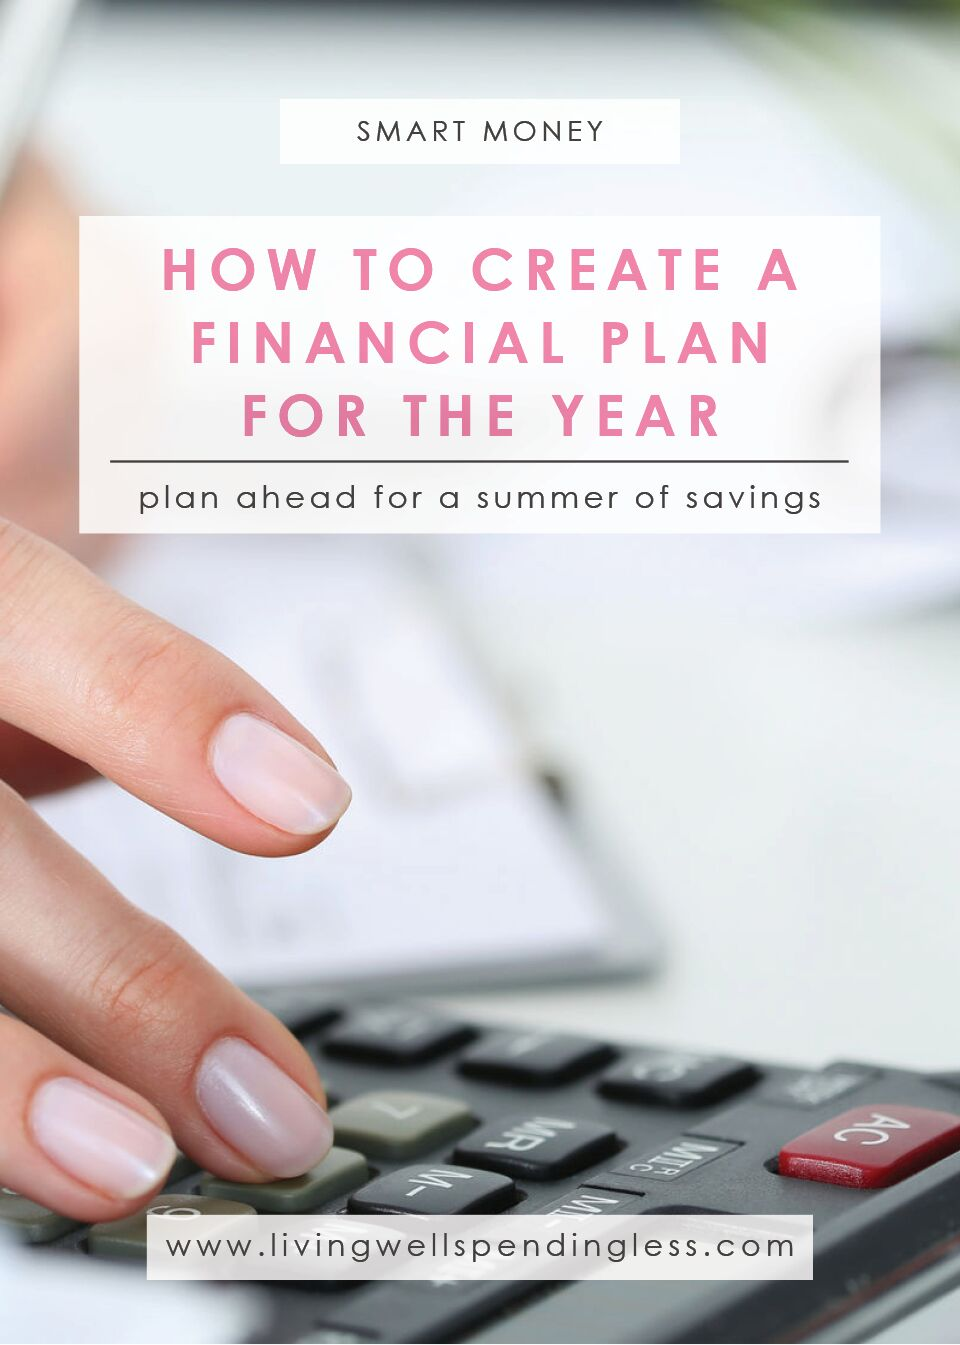 Financial Plan for May | Smart Money | Monthly Saving Tips | How to Keep Your Budget on Track all Year Long | Financial Planning | Summer Savings Plan